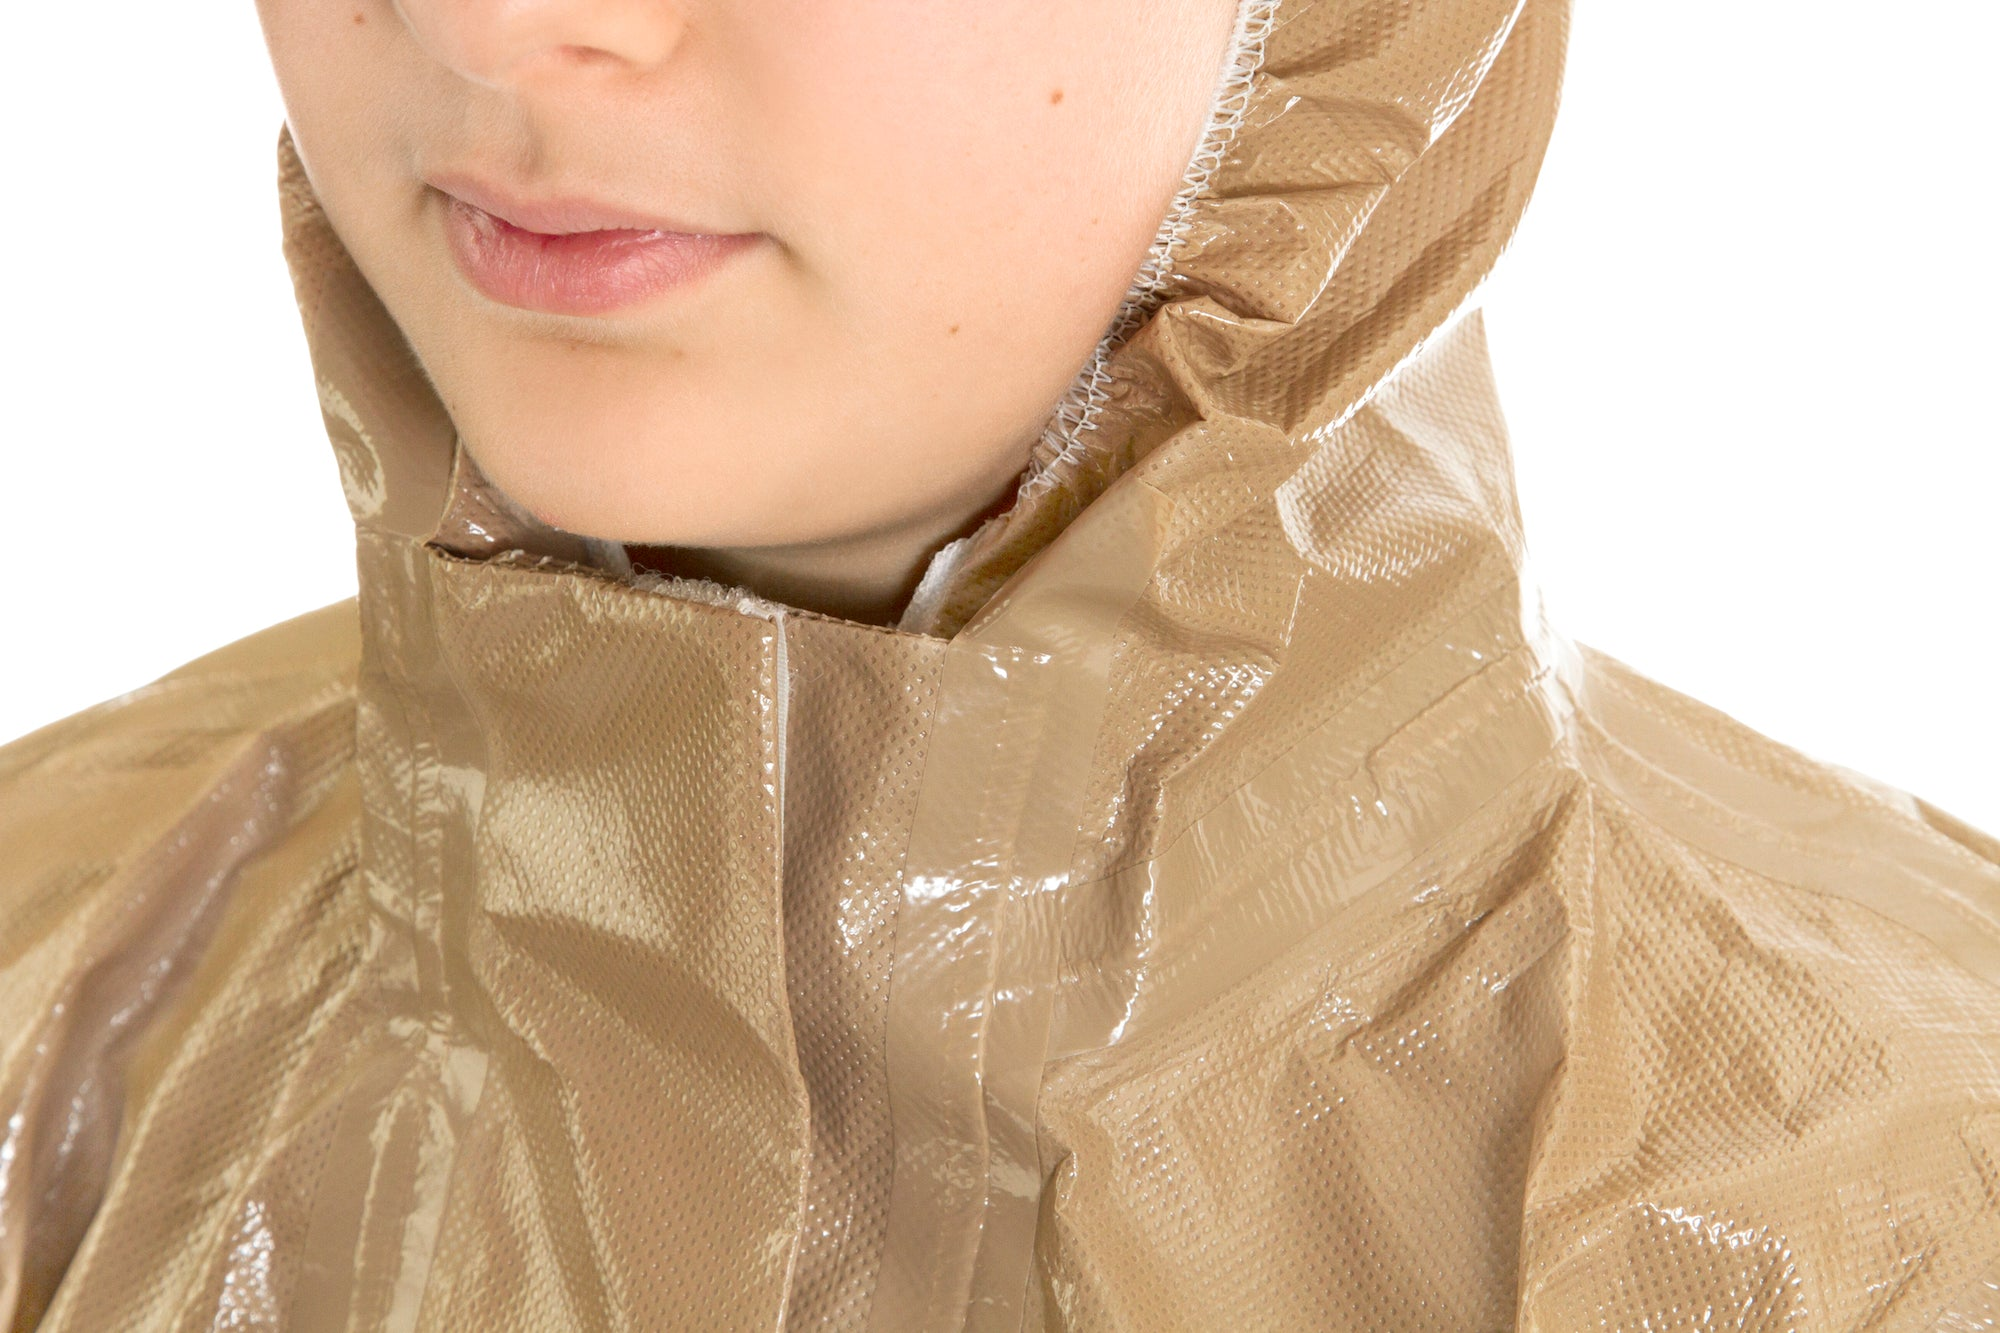 Neck closeup of a child wearing the HAZ-SUIT HAZMAT Suit